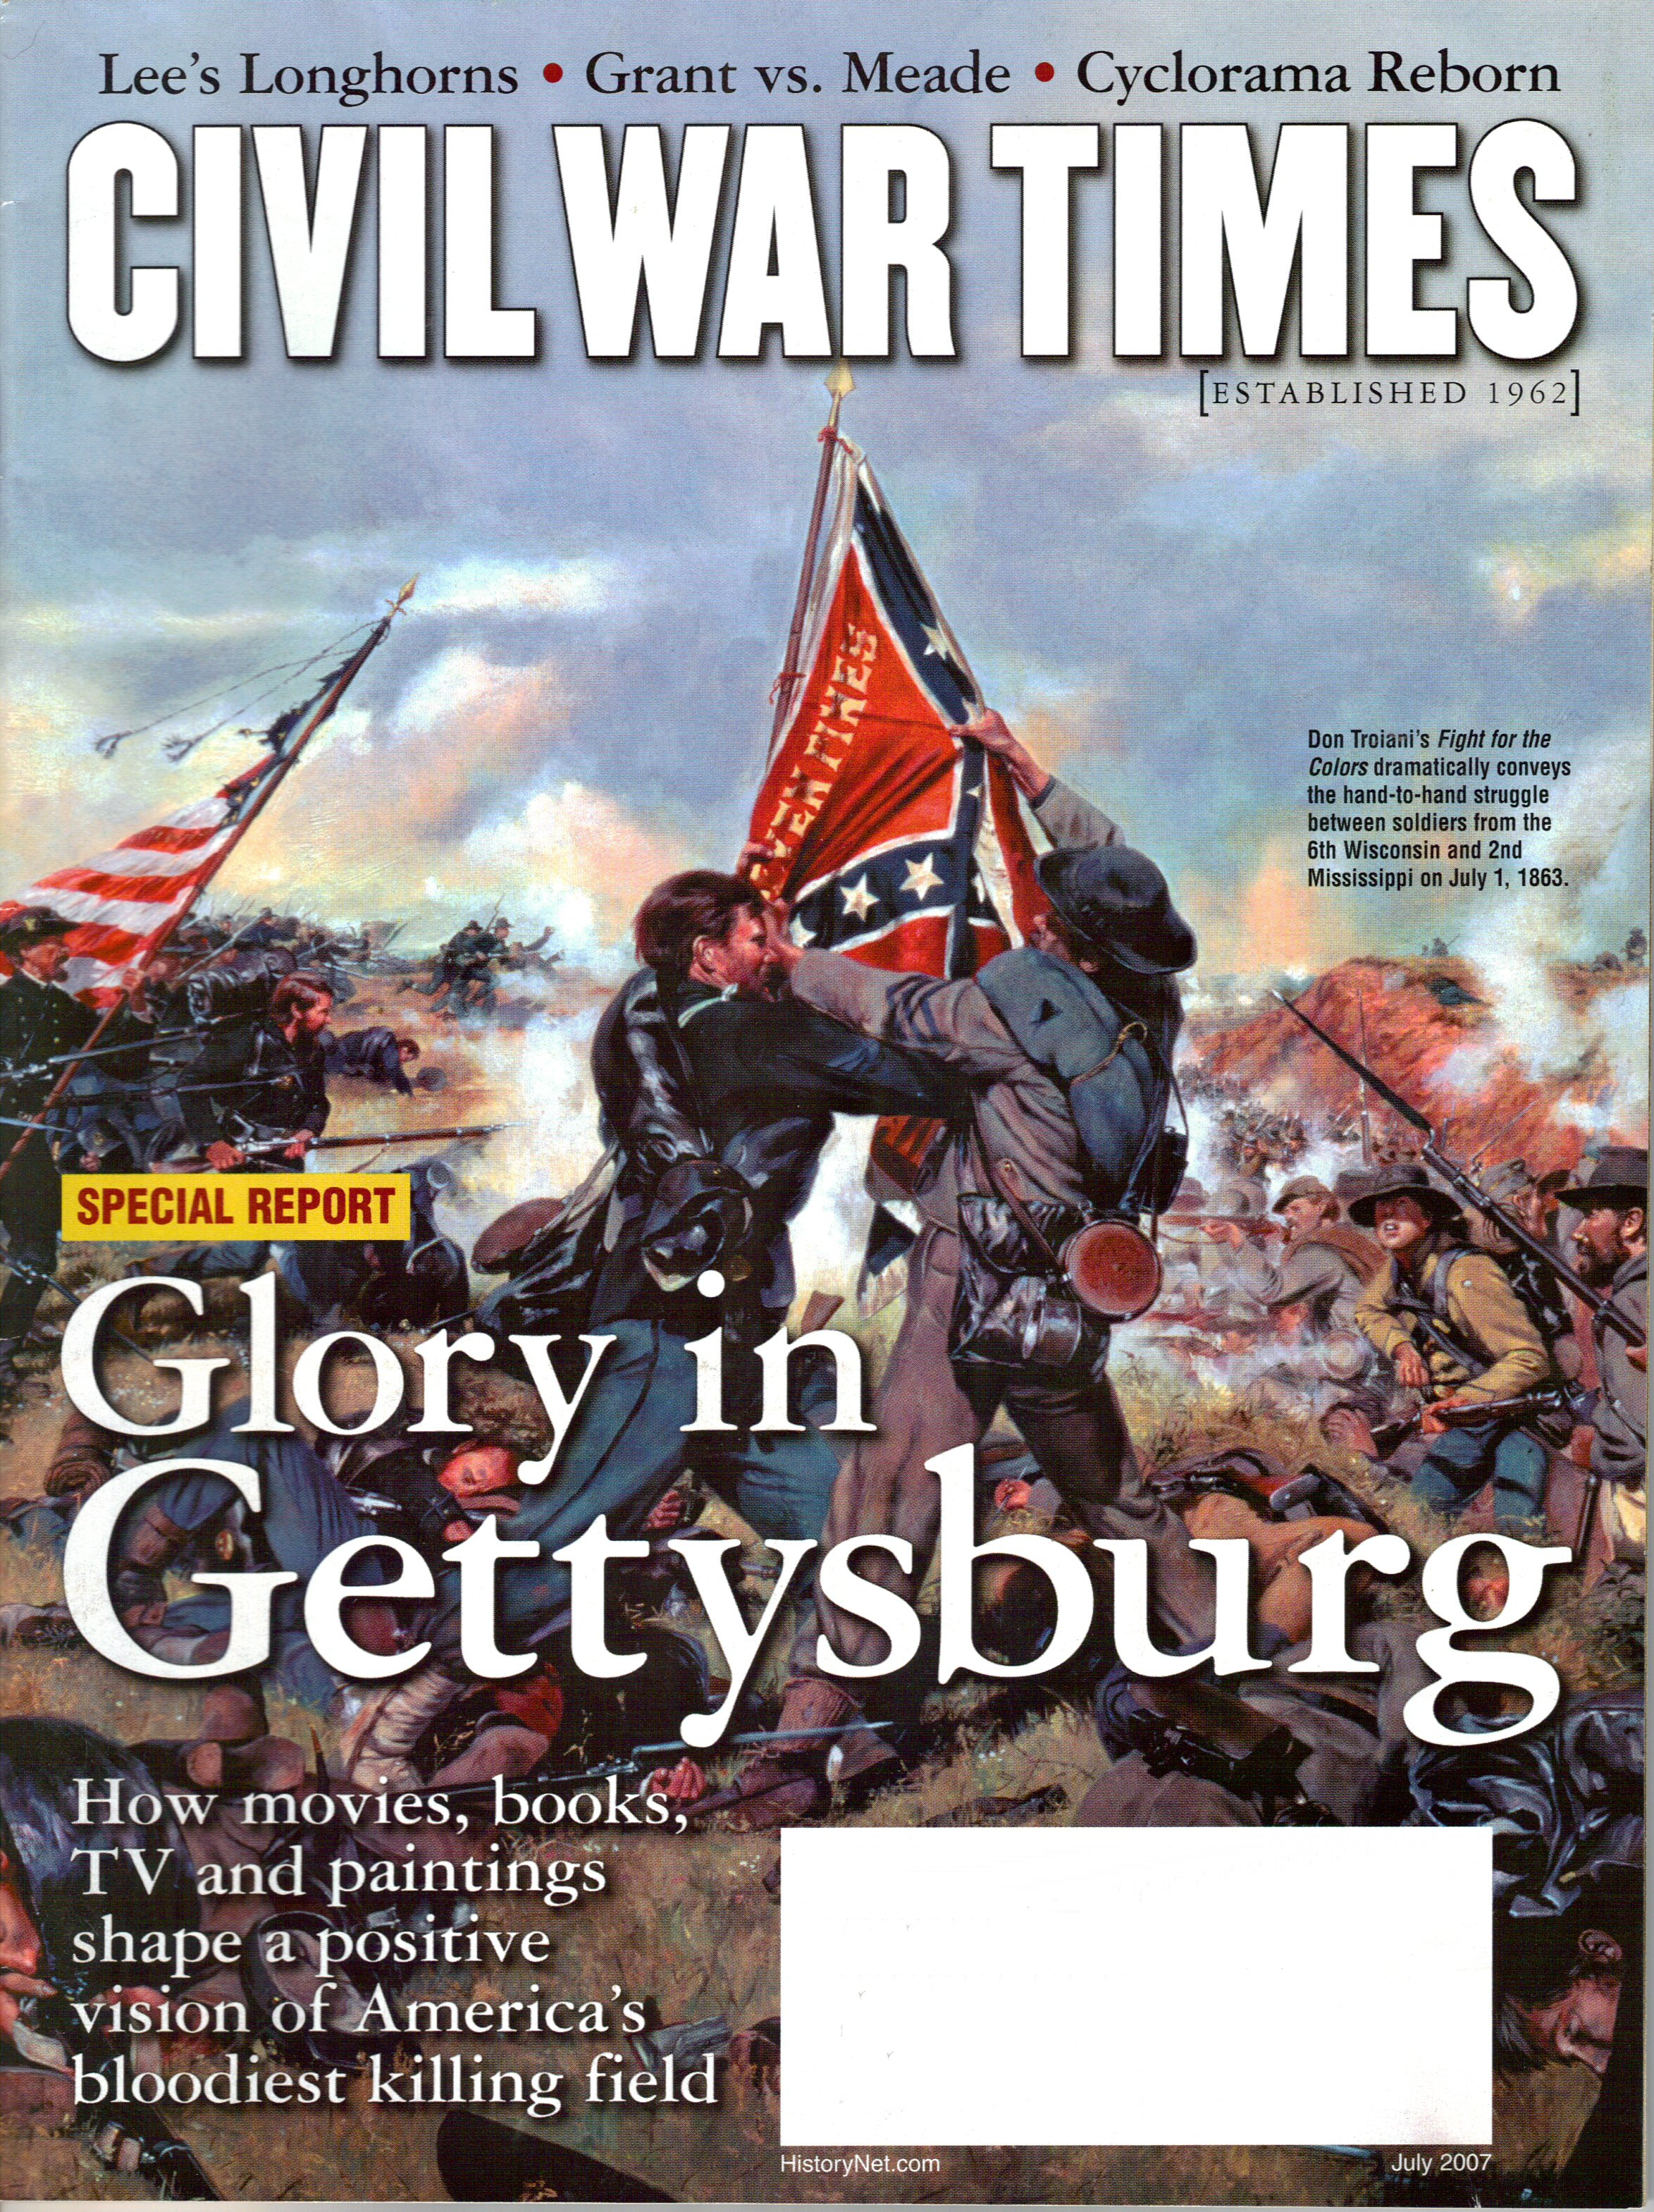 Civil War Times, Volume 46, Number 5 (July 2007)